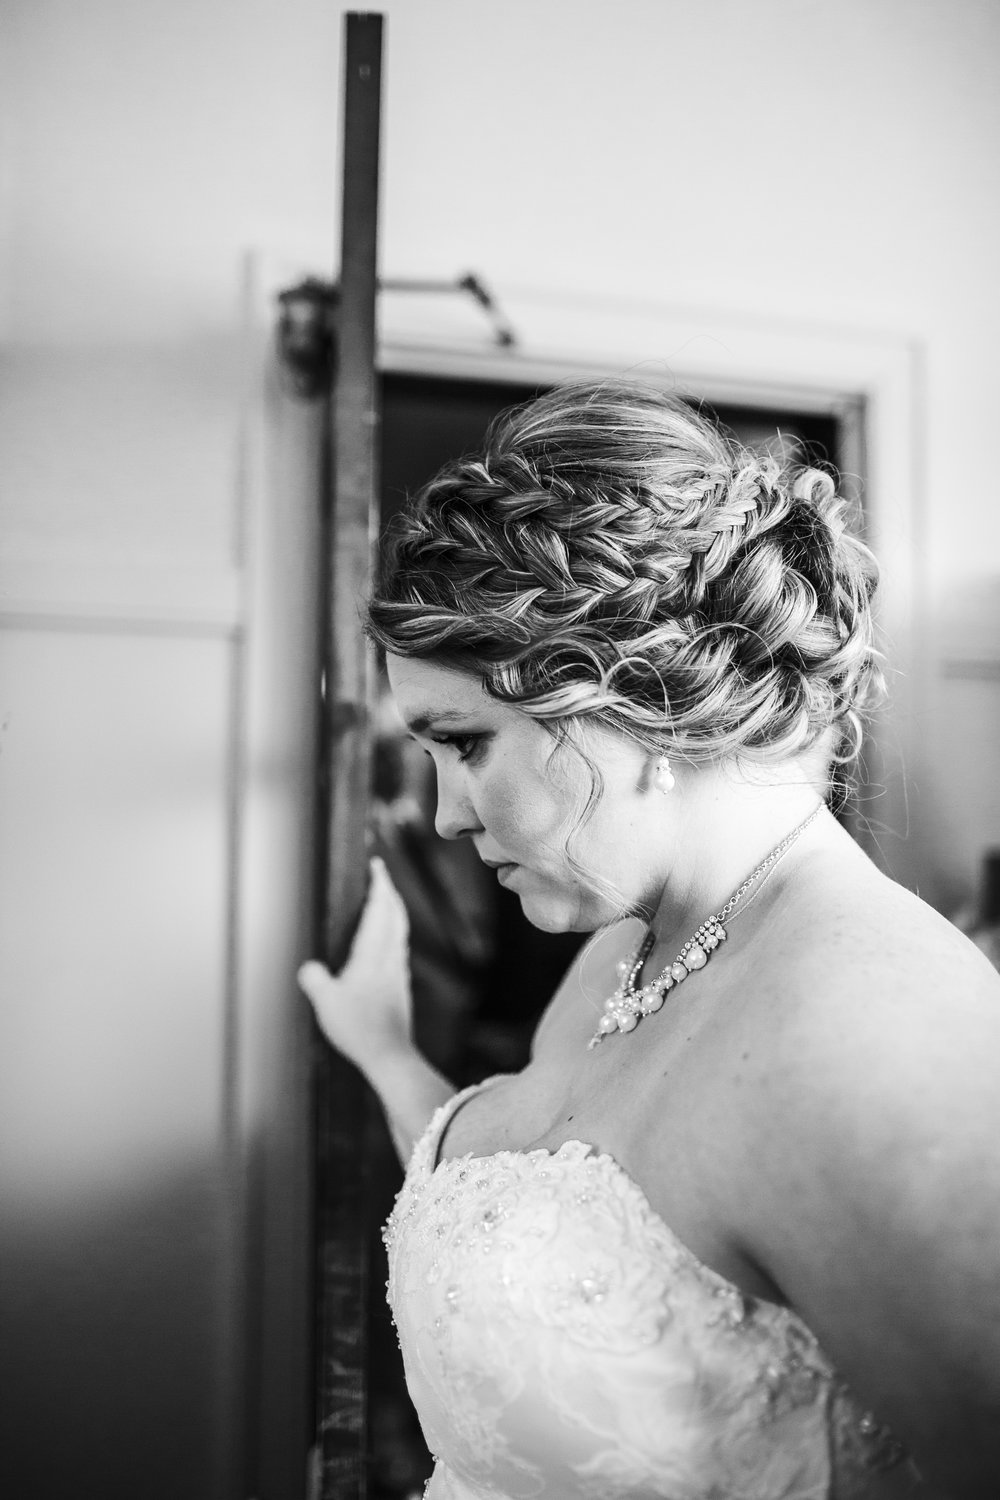 Zibell Spring Wedding, Bride and Groom, Powerful, Connected, Exploration, Laura Duggleby Photography -110.JPG